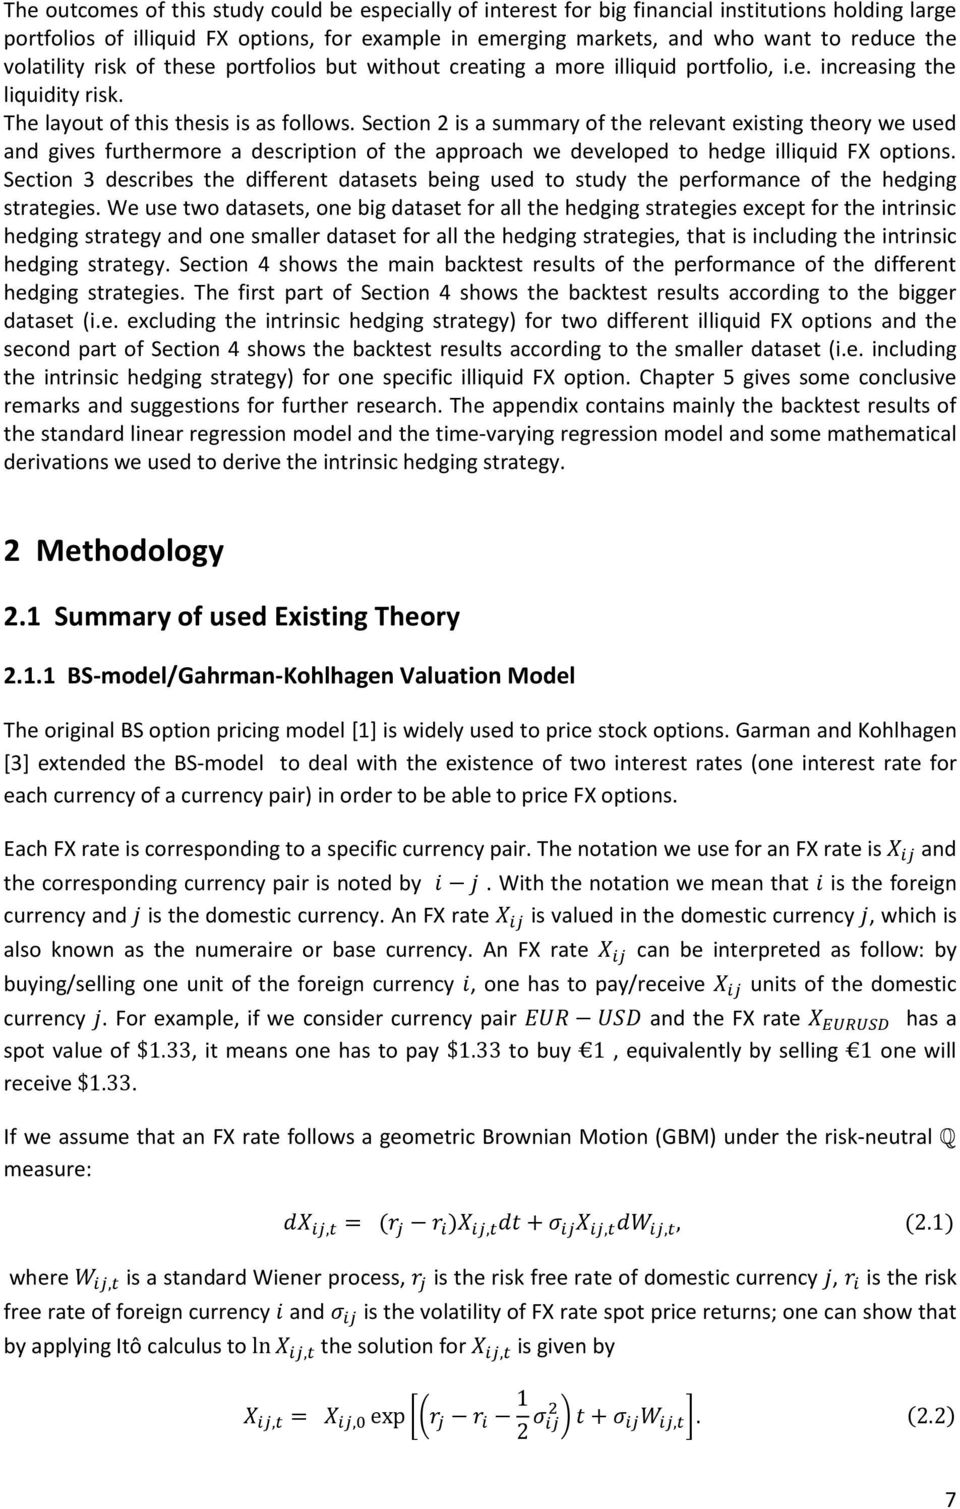 Section 2 is a summary of the relevant existing theory we used and gives furthermore a description of the approach we developed to hedge illiquid FX options.